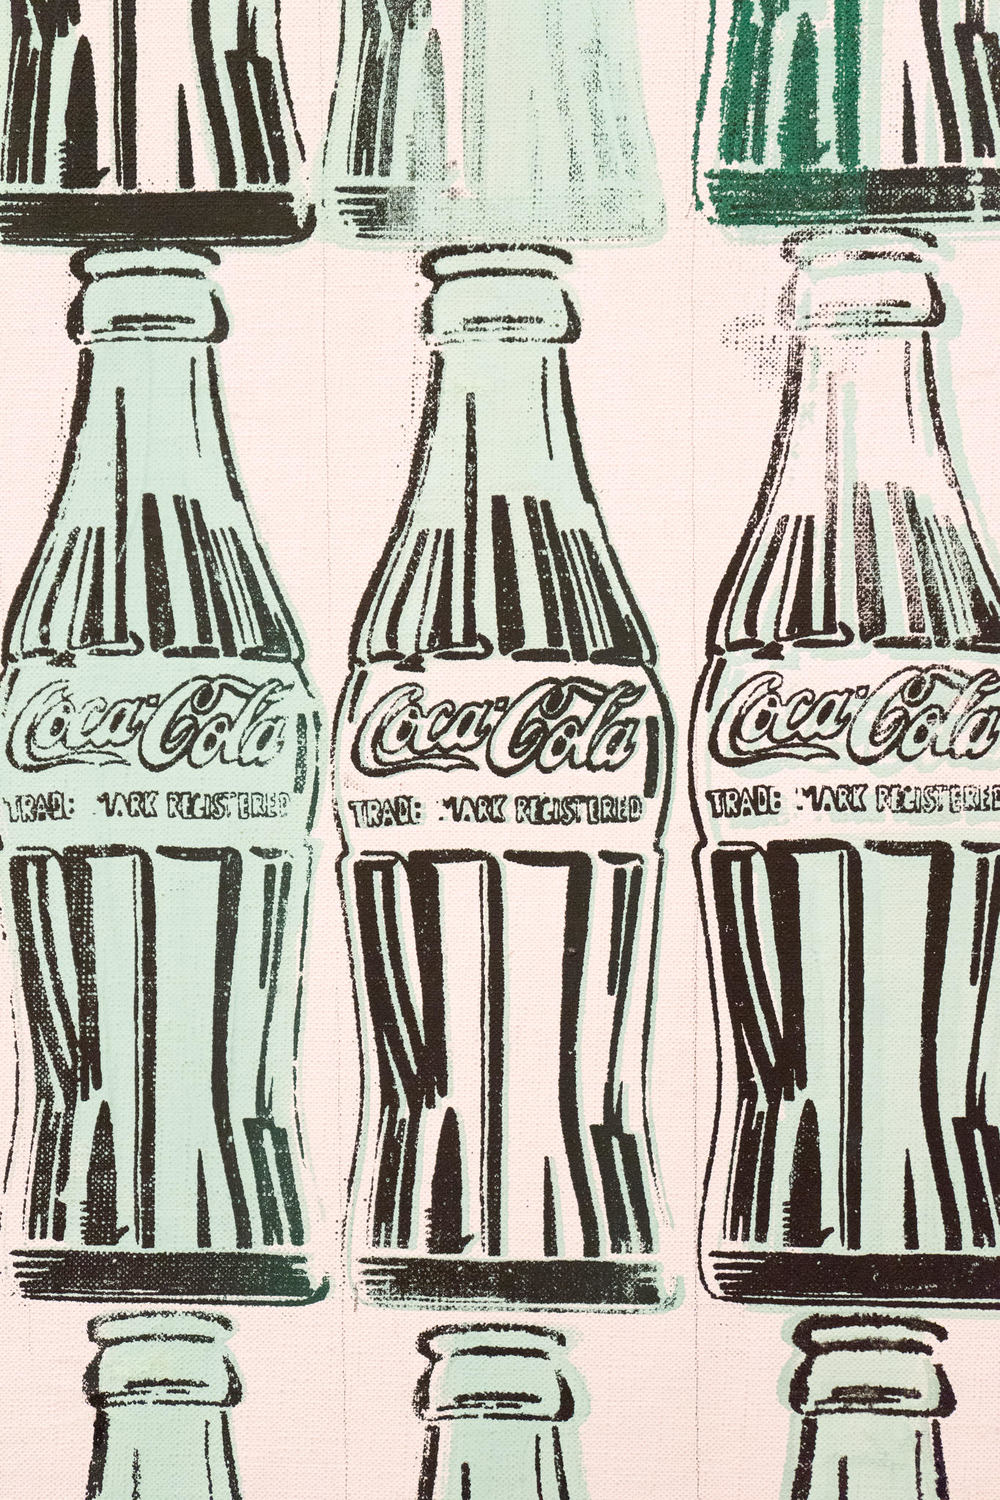 """Green Coca-Cola Bottles"" (Andy Warhol, 1962, at the Whitney Museum)"